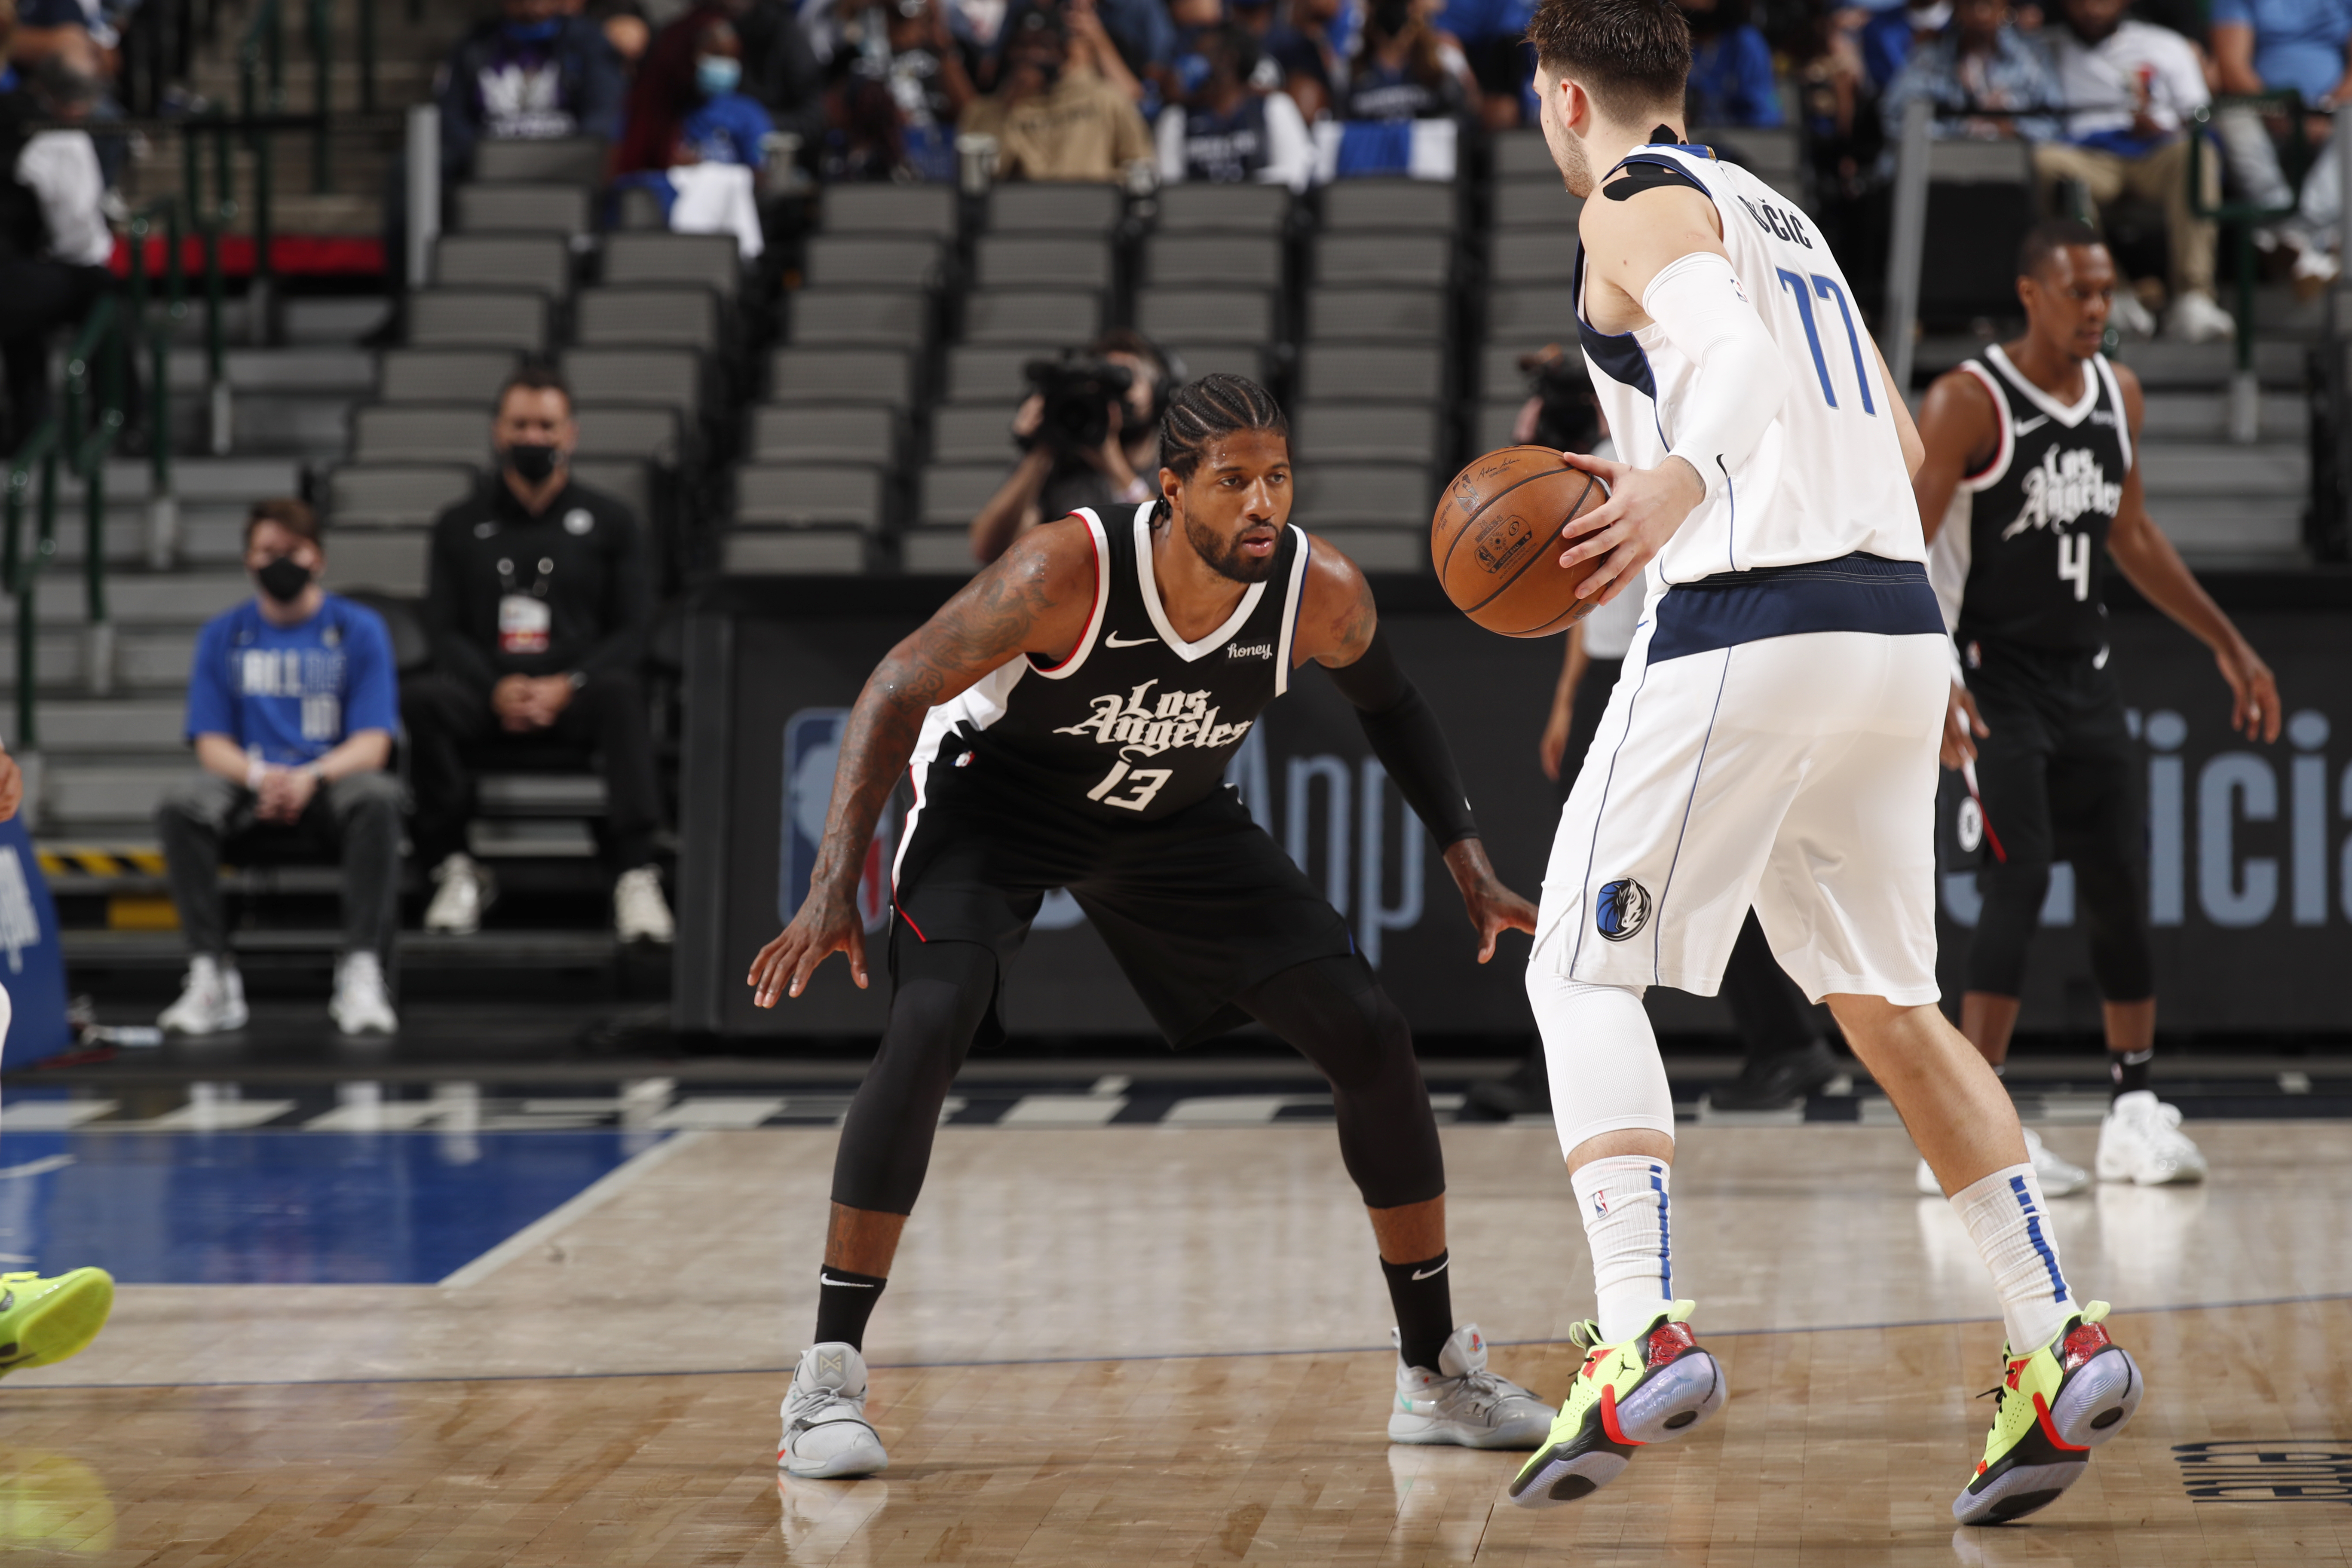 Paul George of the LA Clippers plays defense on Luka Doncic of the Dallas Mavericks during Round 1, Game 3 of the 2021 NBA Playoffs on May 30, 2021 at the American Airlines Center in Dallas, Texas.